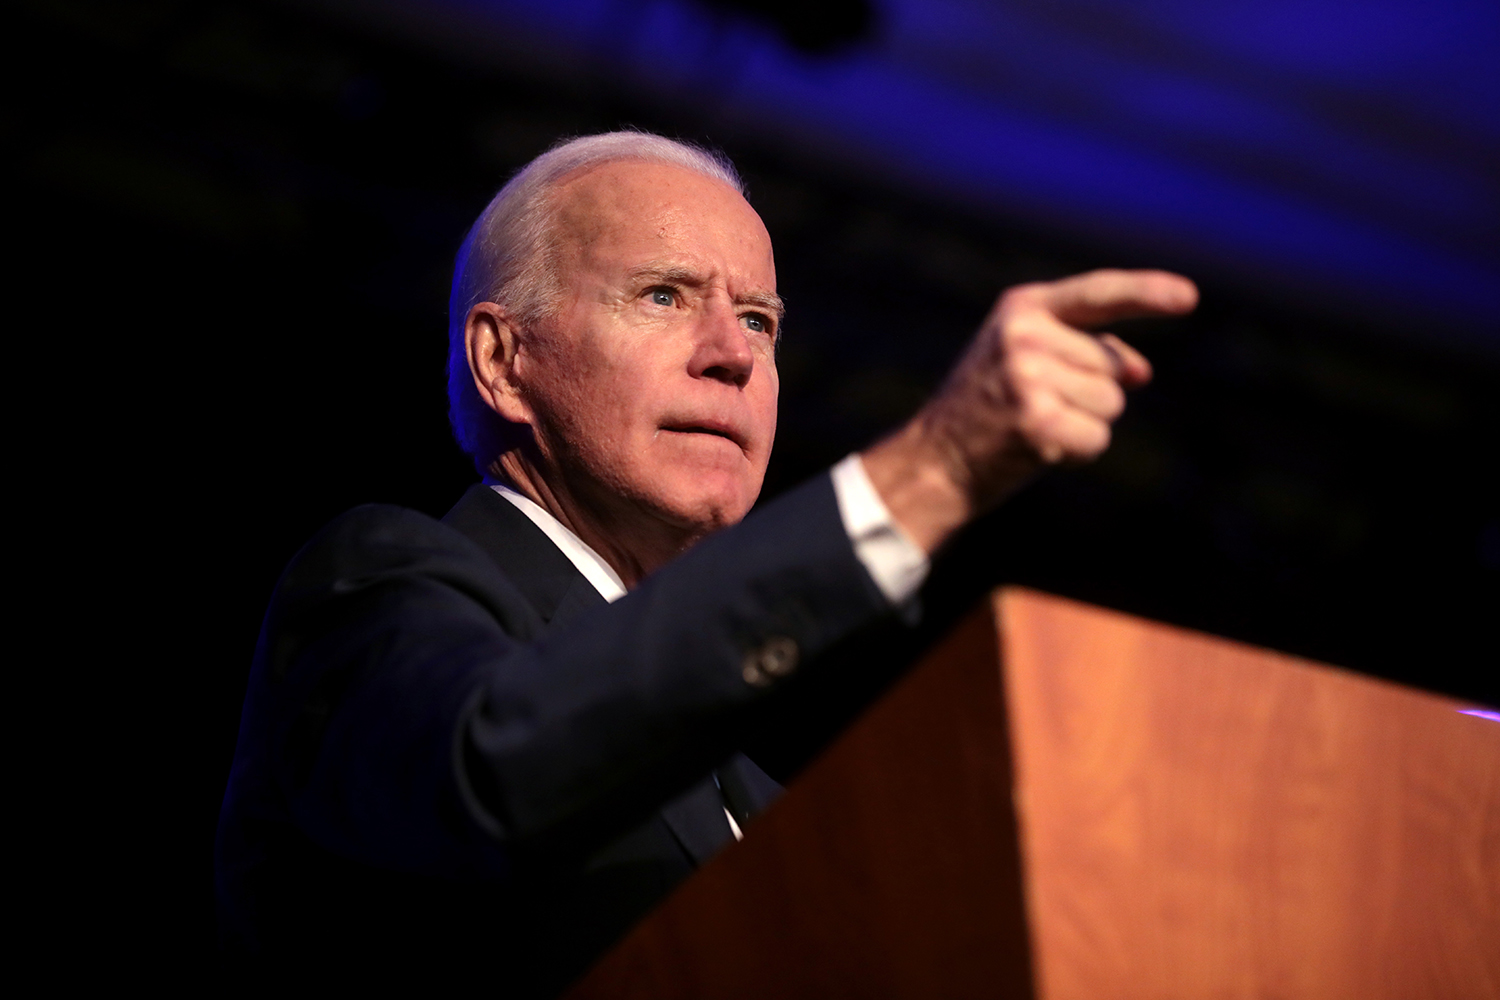 Event: The Biden Administration – A New Opening for Yemen?